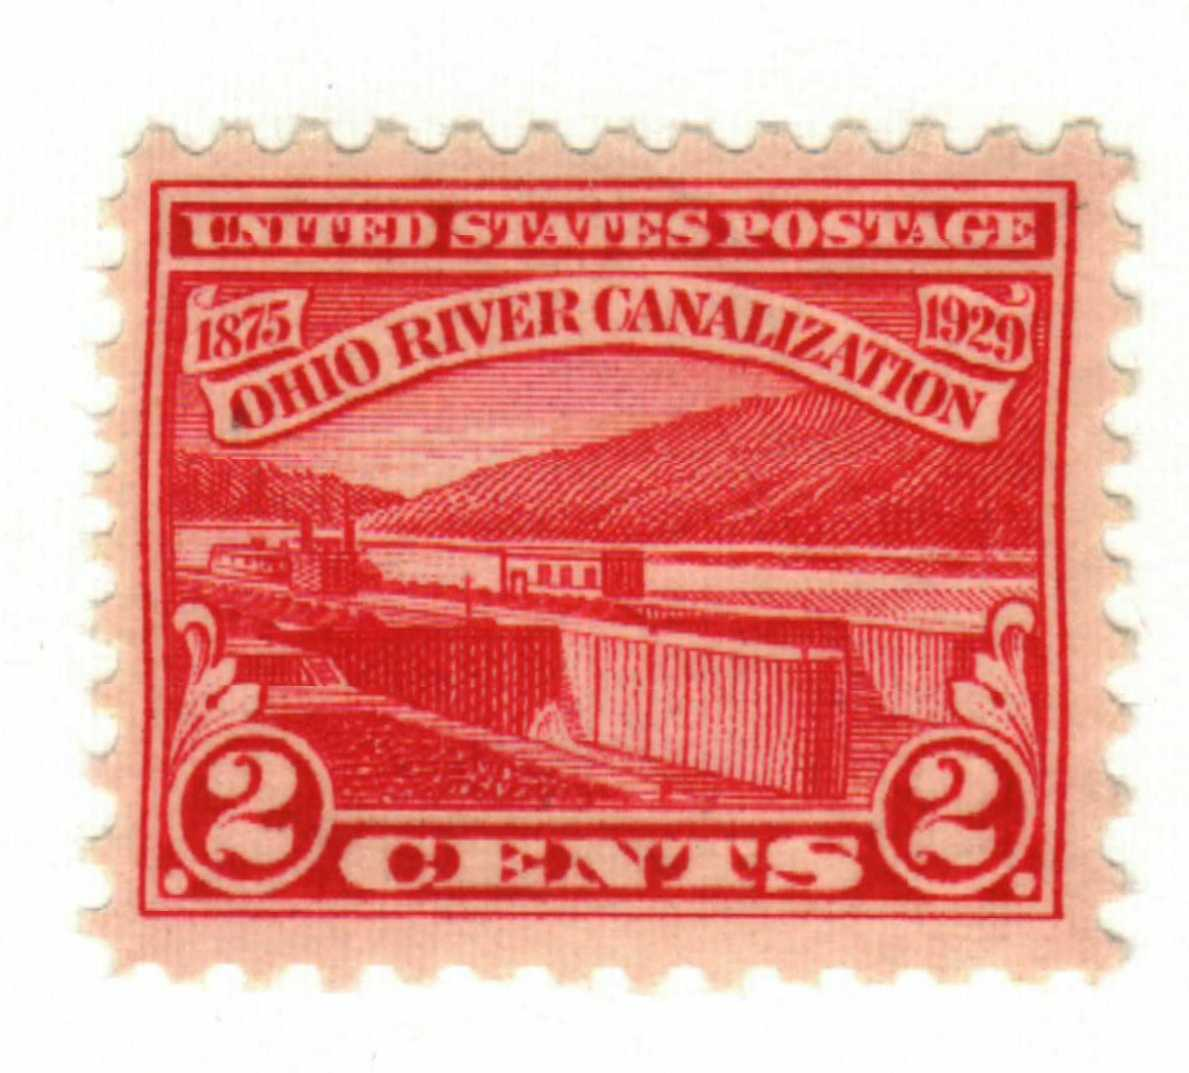 1929 2c Ohio River Canalization